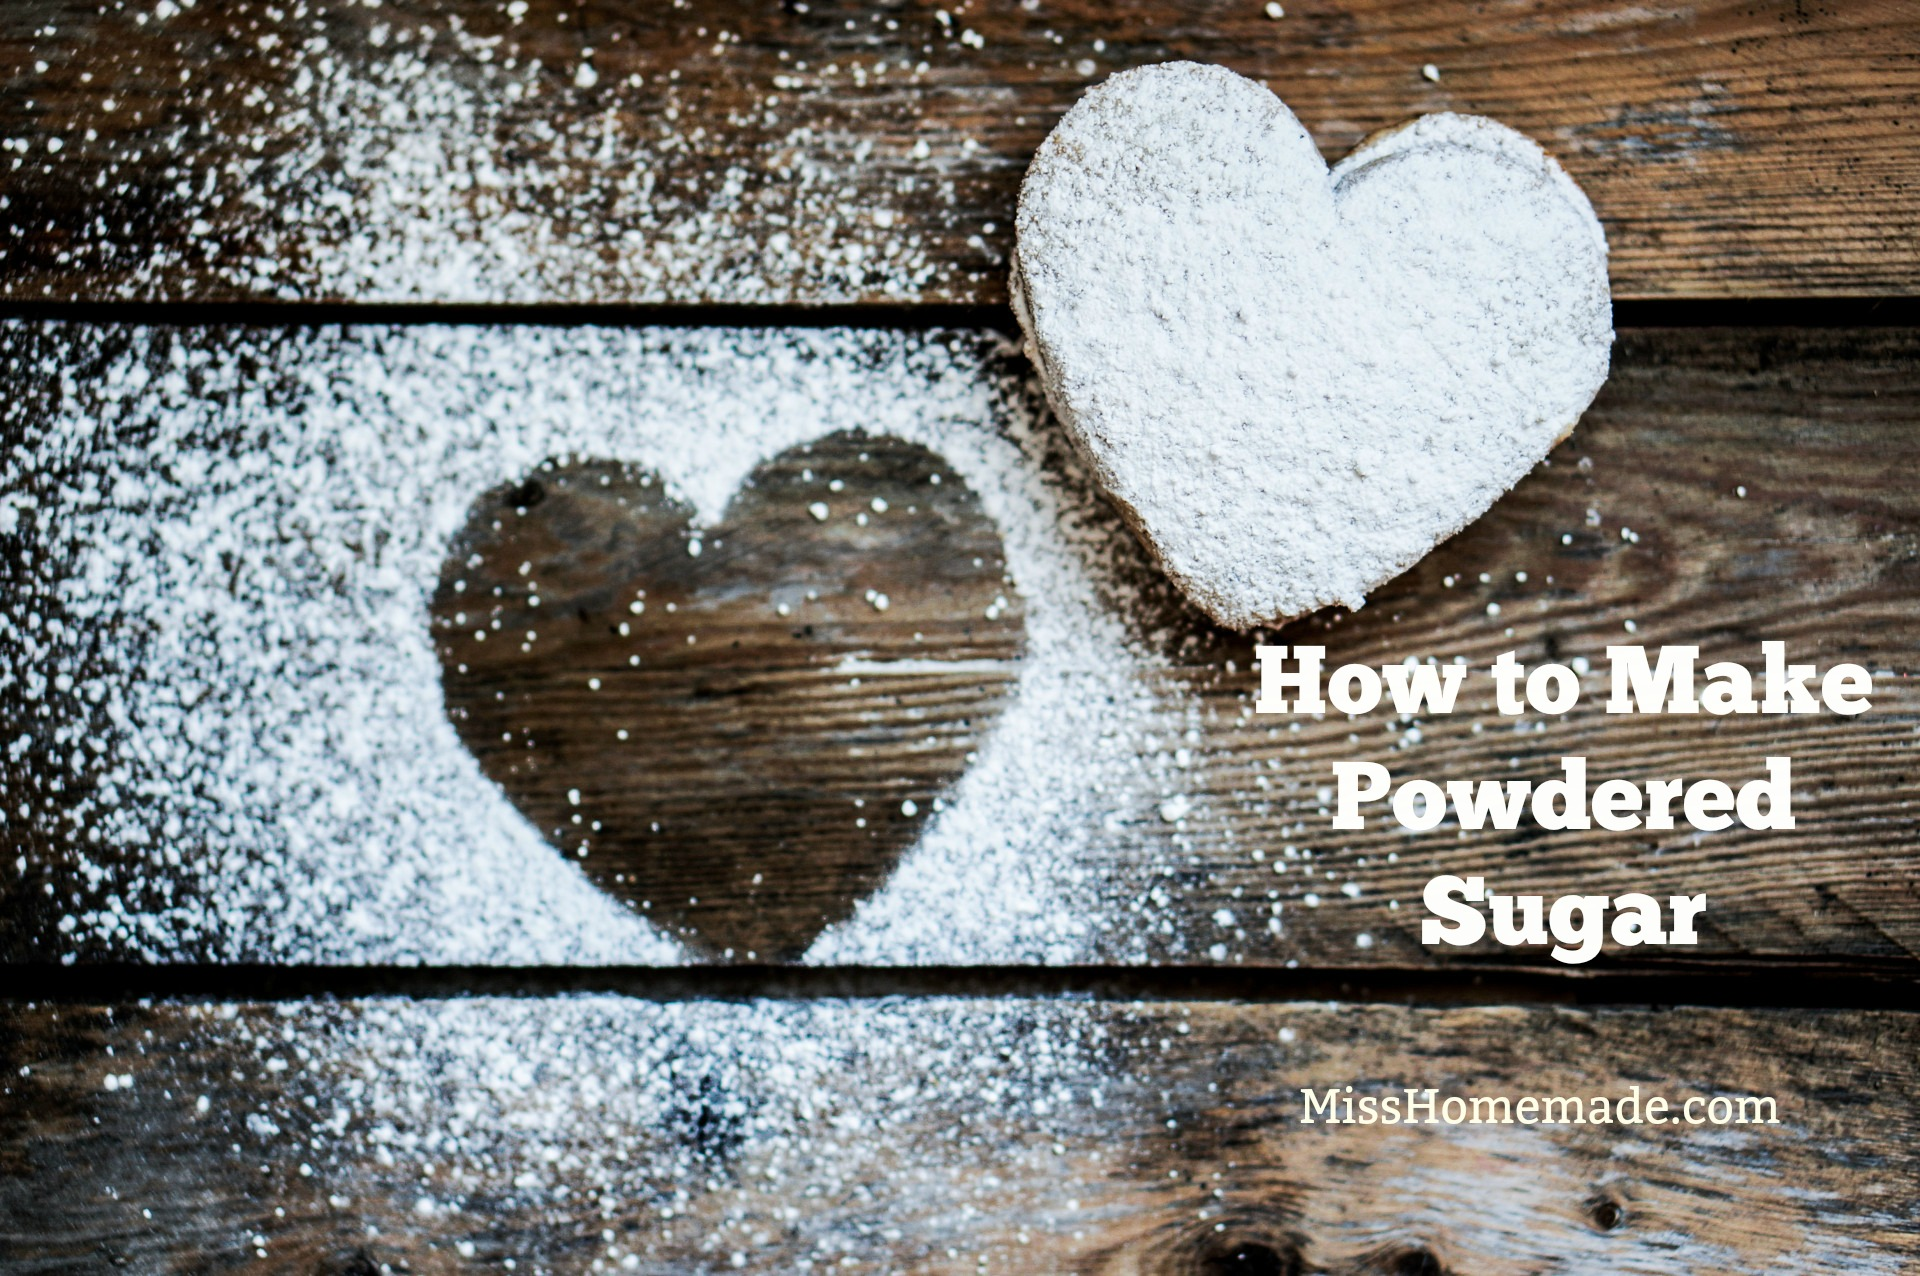 How to make Powdered Sugar at Home - this and more at MissHomemade.com